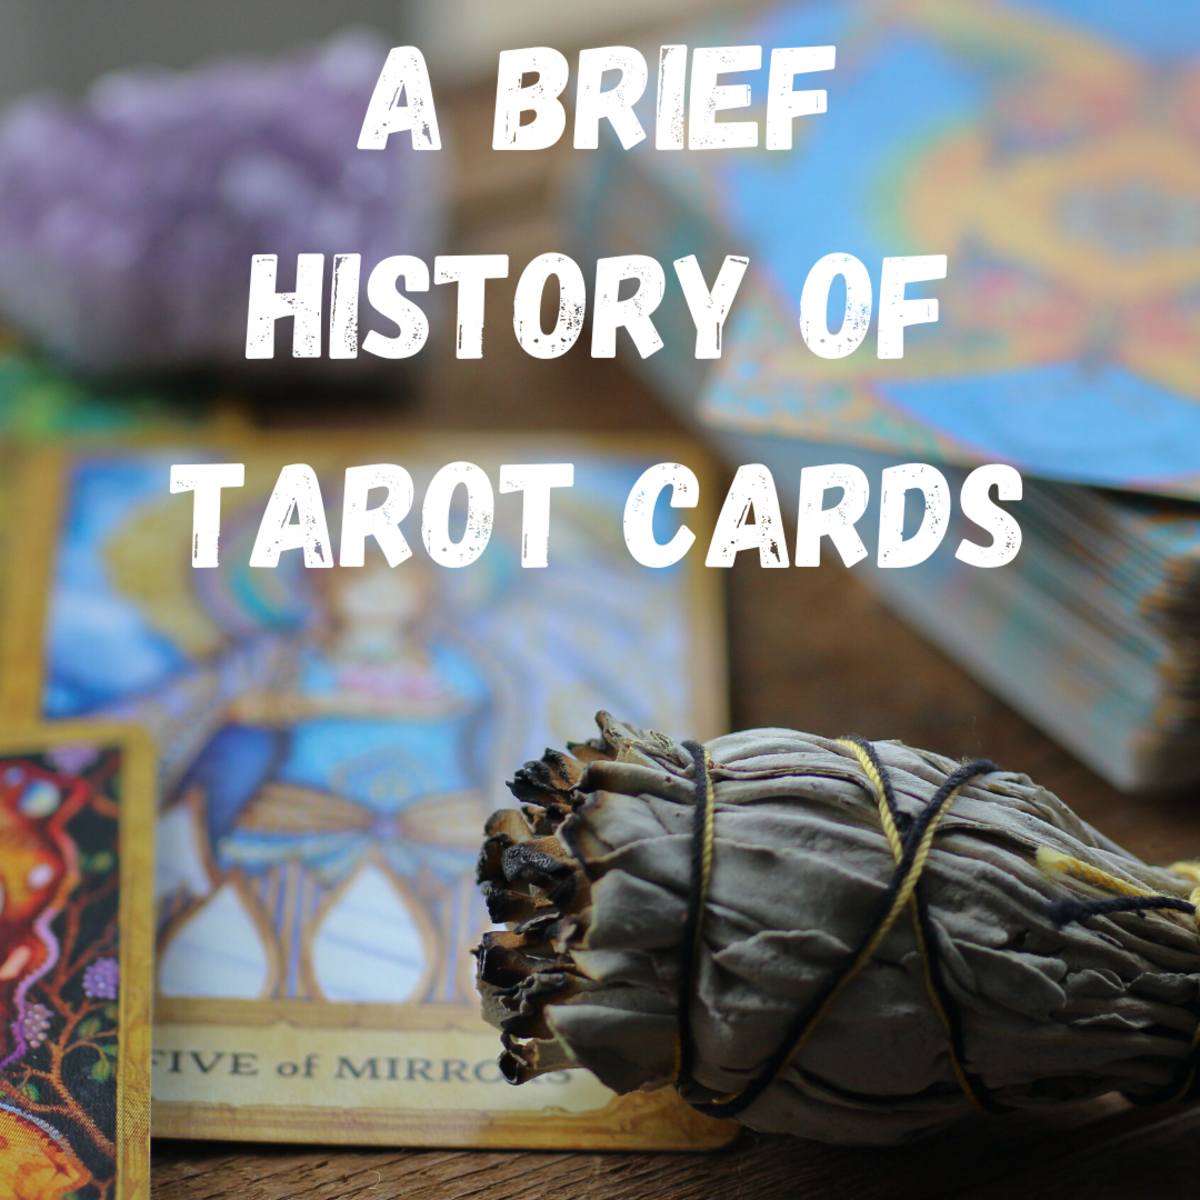 Read on to learn the history of tarot cards.